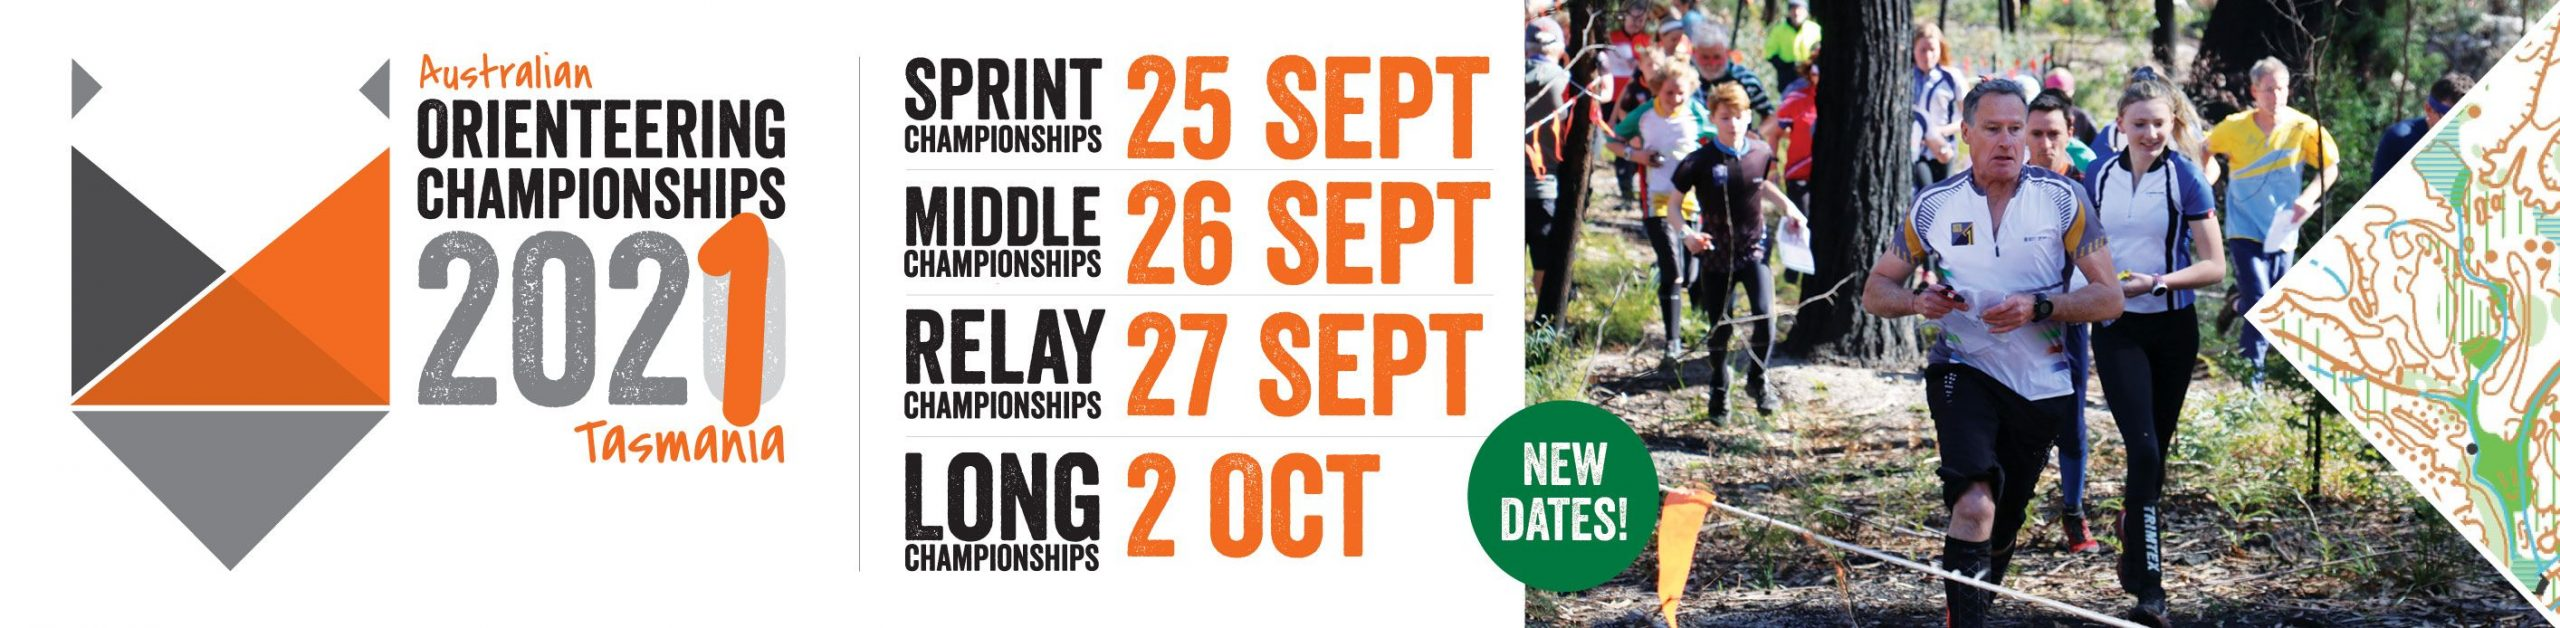 Australian Orienteering Championships 2020 All Events